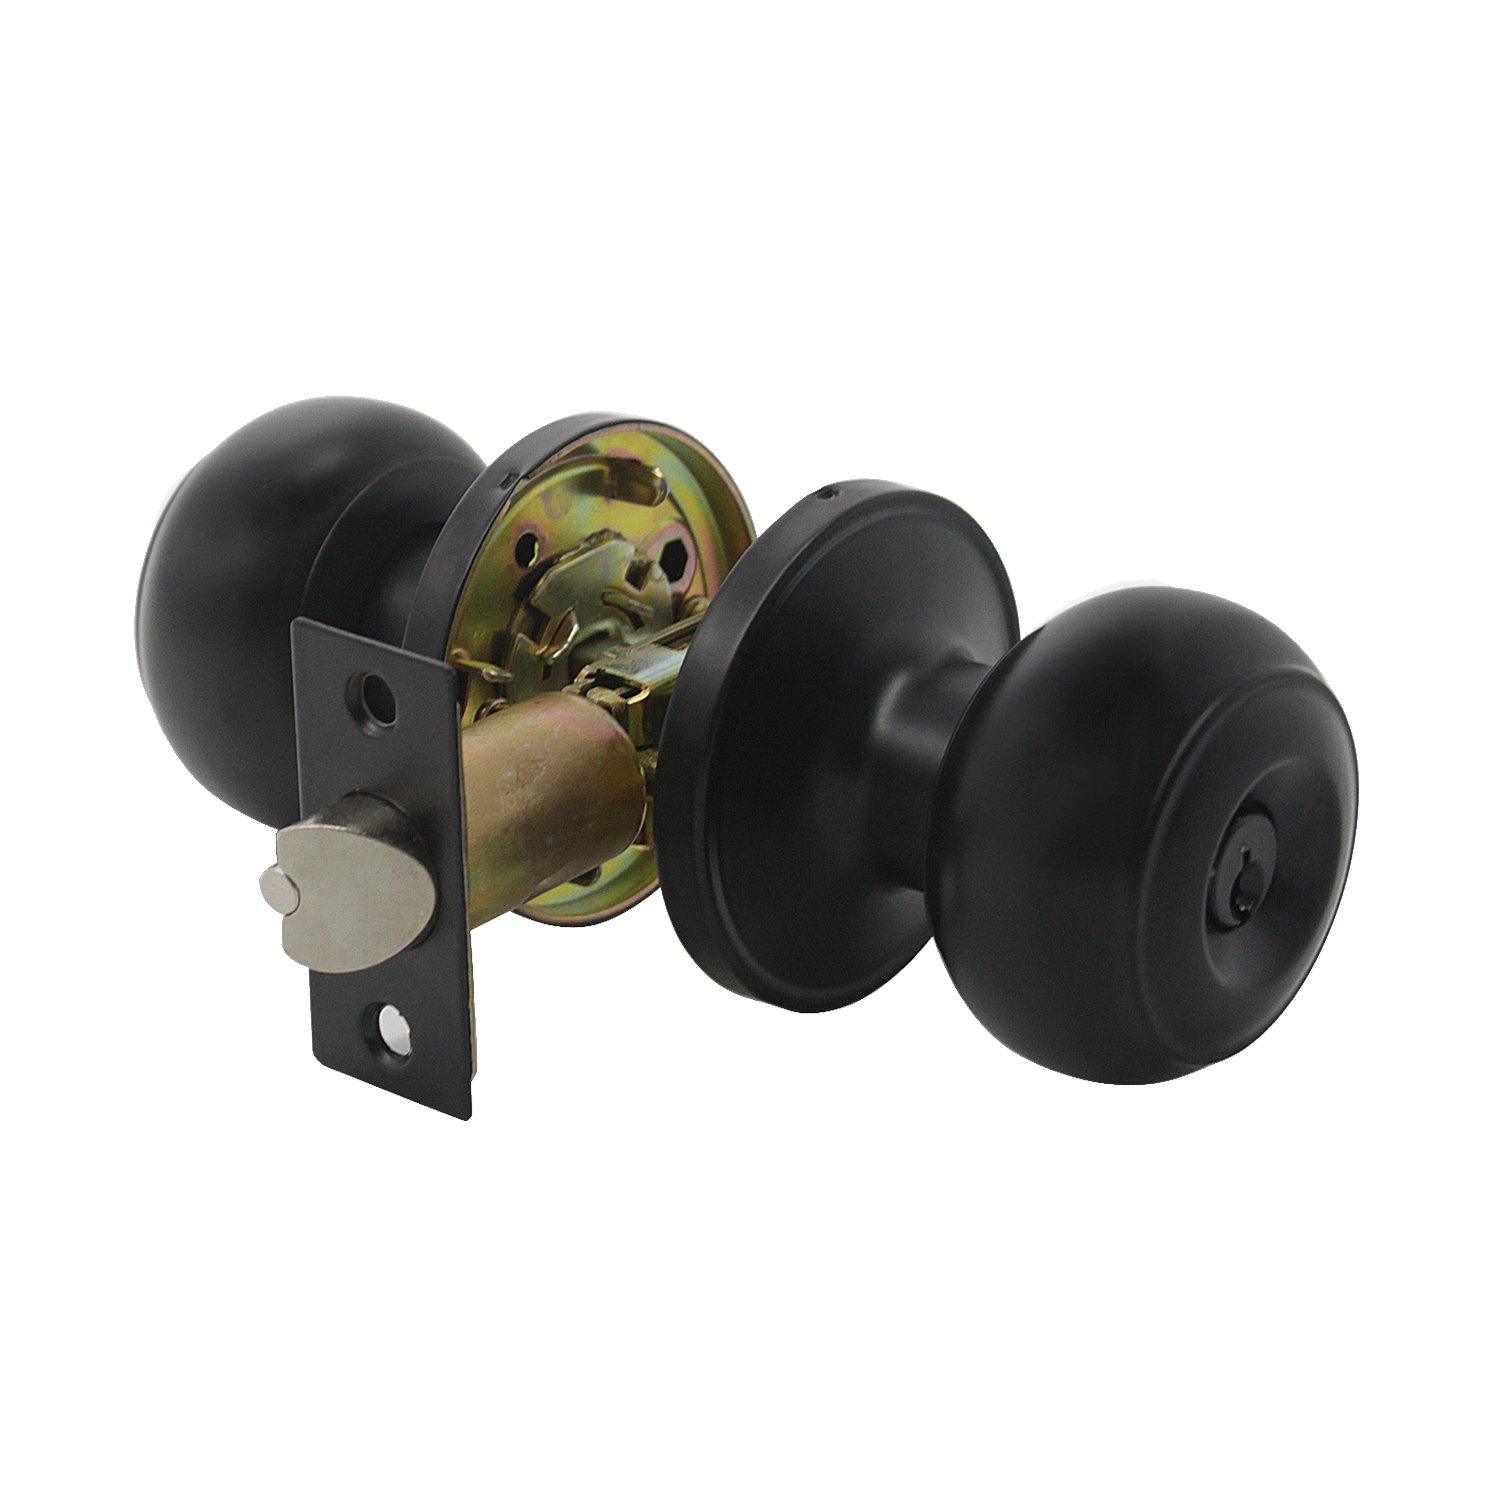 Ball Privacy Interior/Exterior Doorknob with Key, Vintage Keyed Entry Door Knobs Lock, Security Knob Handle for Bathroom/Bedroom/Kitchen, Matte Black Finish